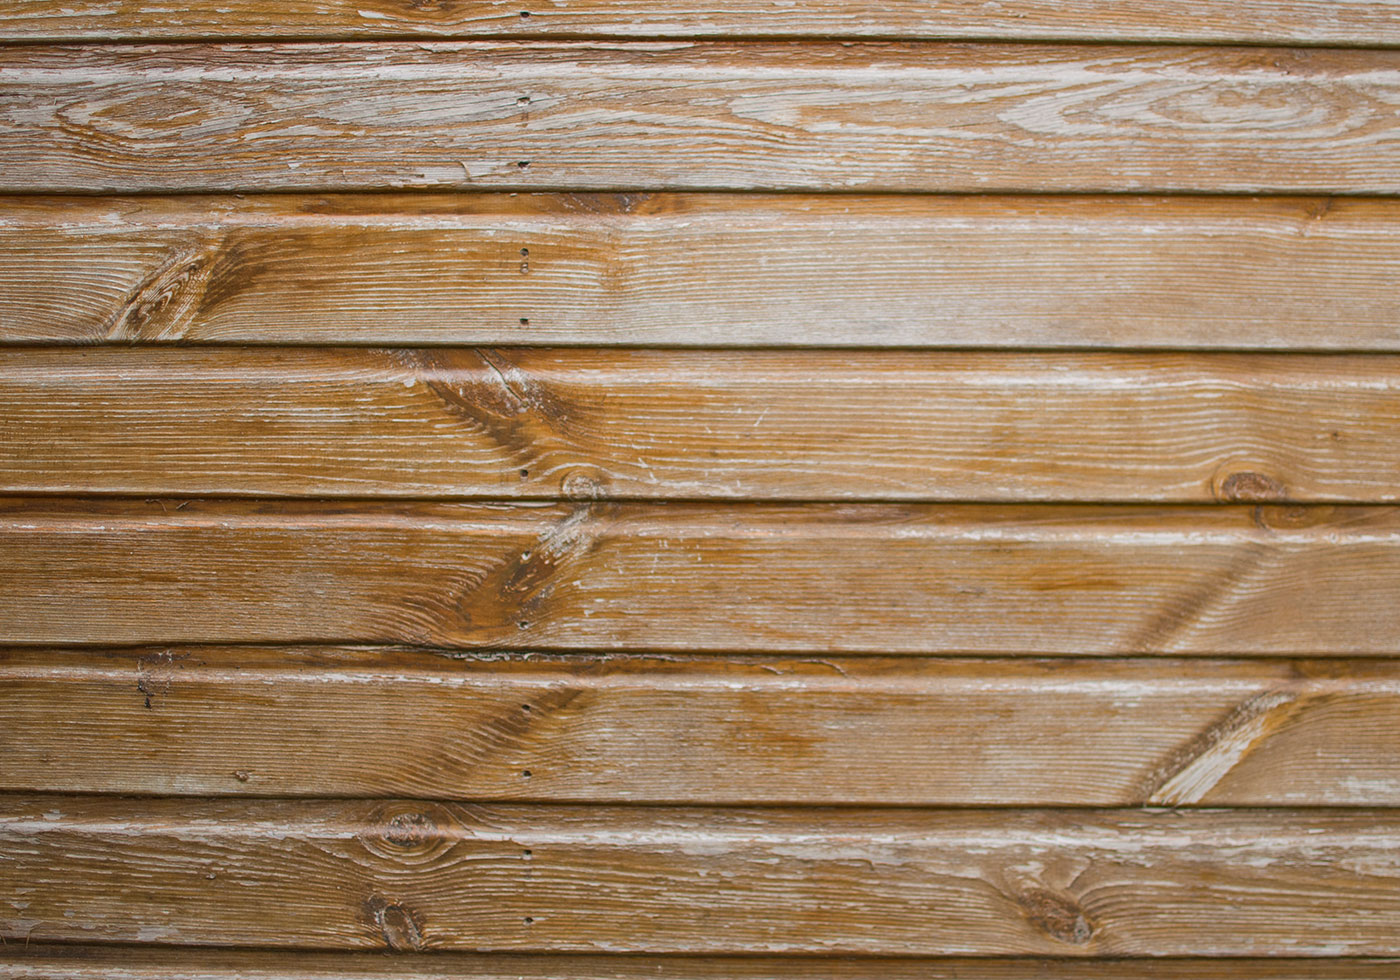 Slatted Wood Free Photoshop Brushes At Brusheezy